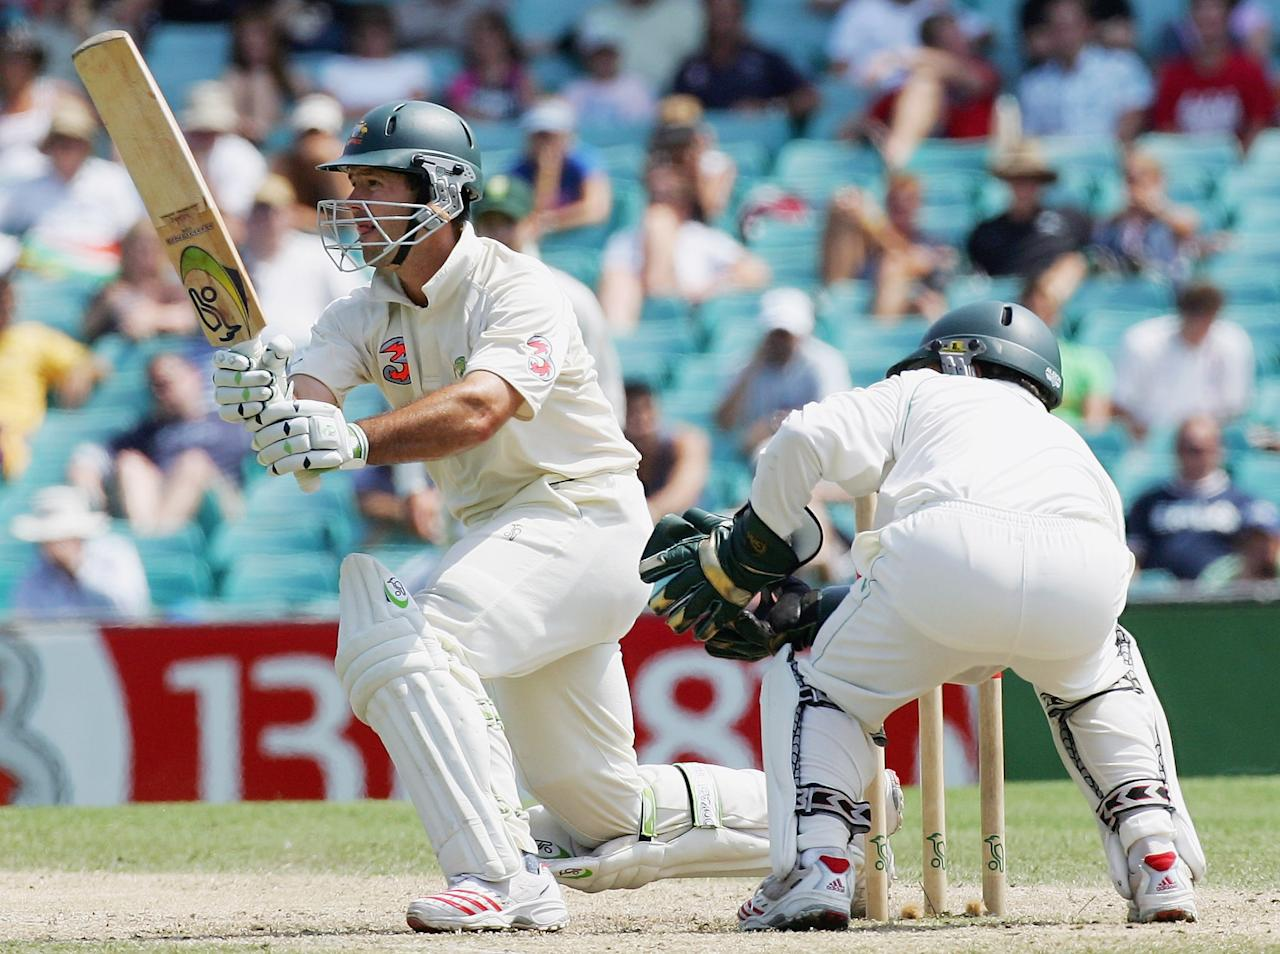 SYDNEY, NSW - JANUARY 06:  Ricky Ponting of Australia in action during day five of the Third Test between Australia and South Africa played at the SCG on January 6, 2006 in Sydney, Australia.  (Photo by Hamish Blair/Getty Images)